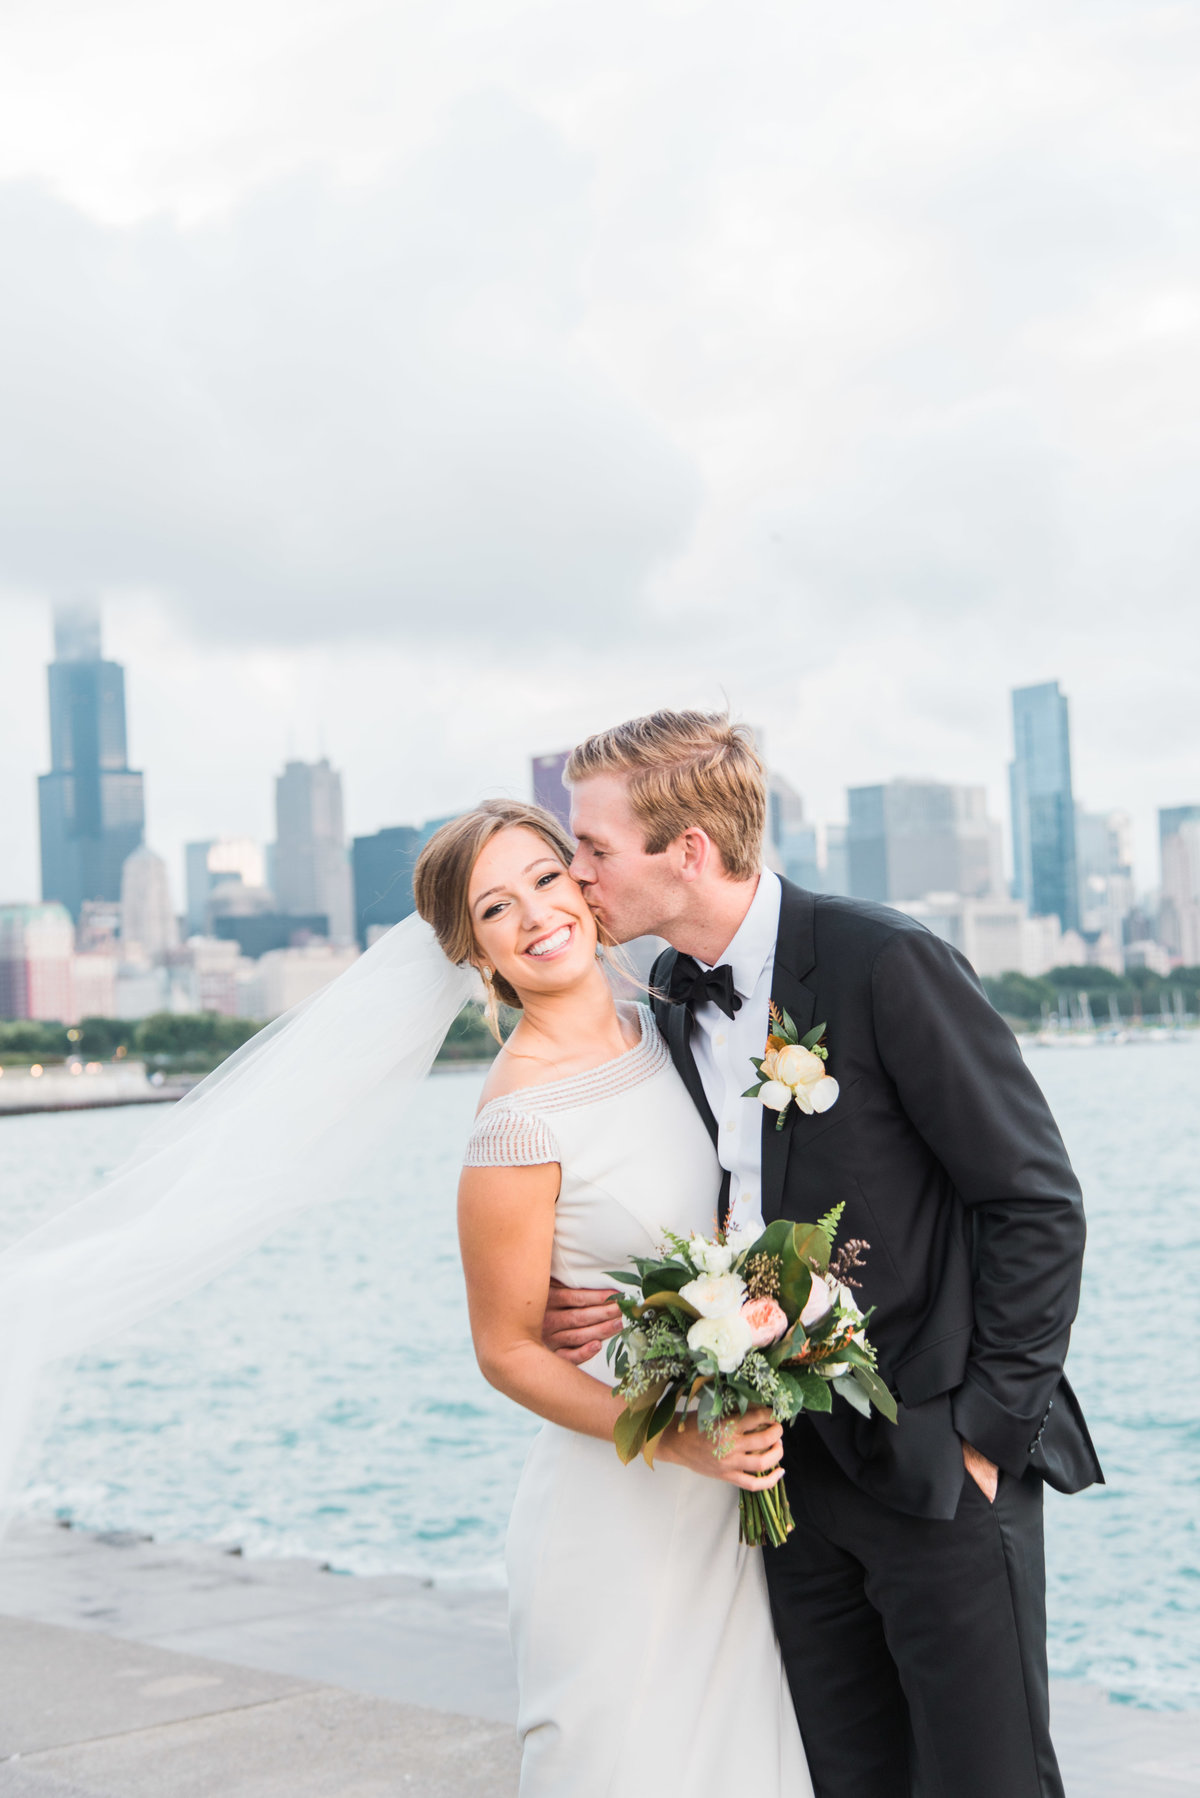 dallas-fort-worth-wedding-photographer-steph-erffmeyer-gray-door-photography11